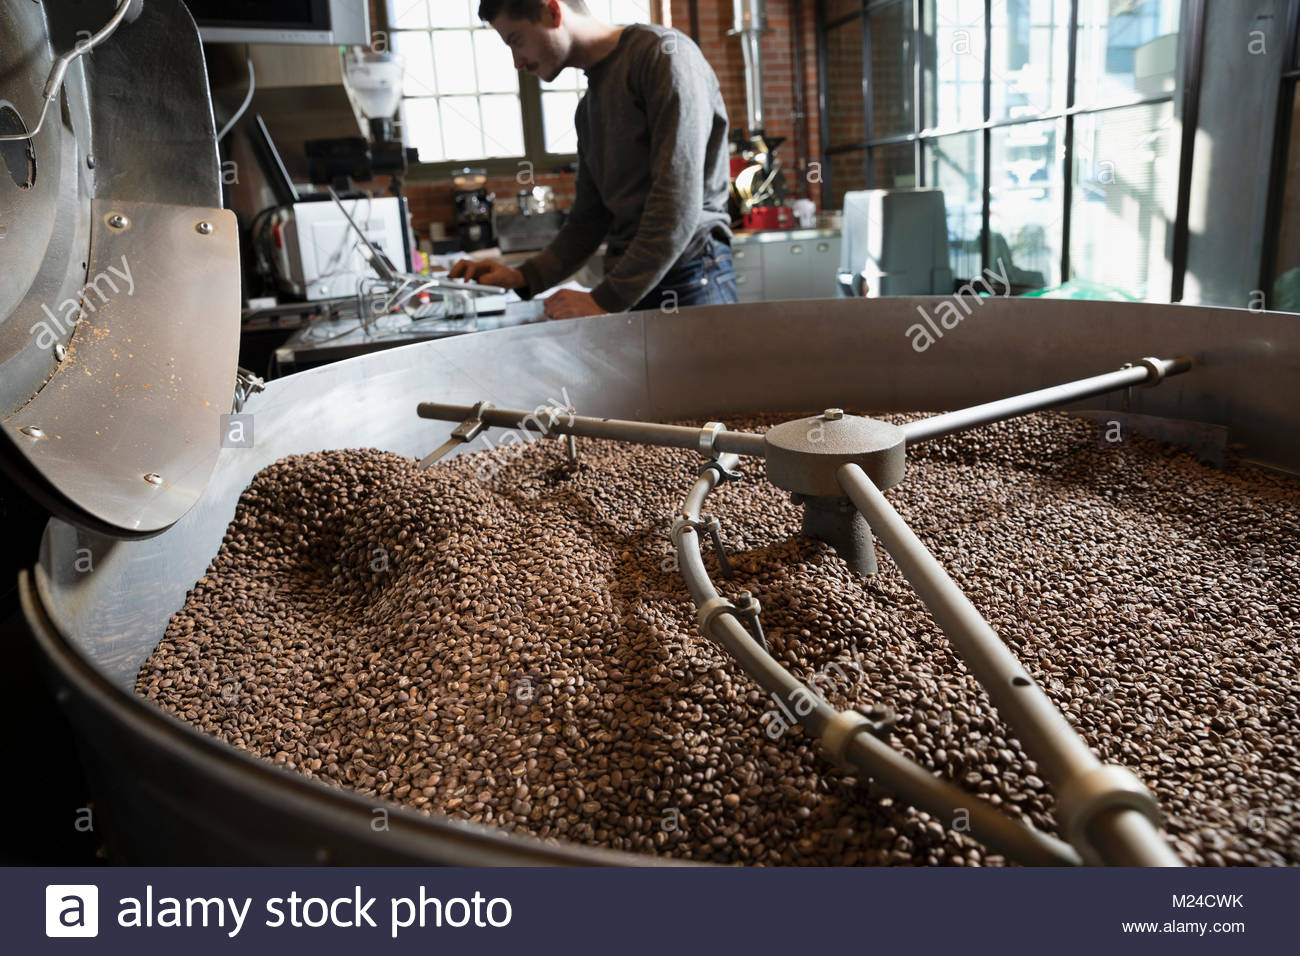 Coffee beans roasting in large coffee roaster - Stock Image